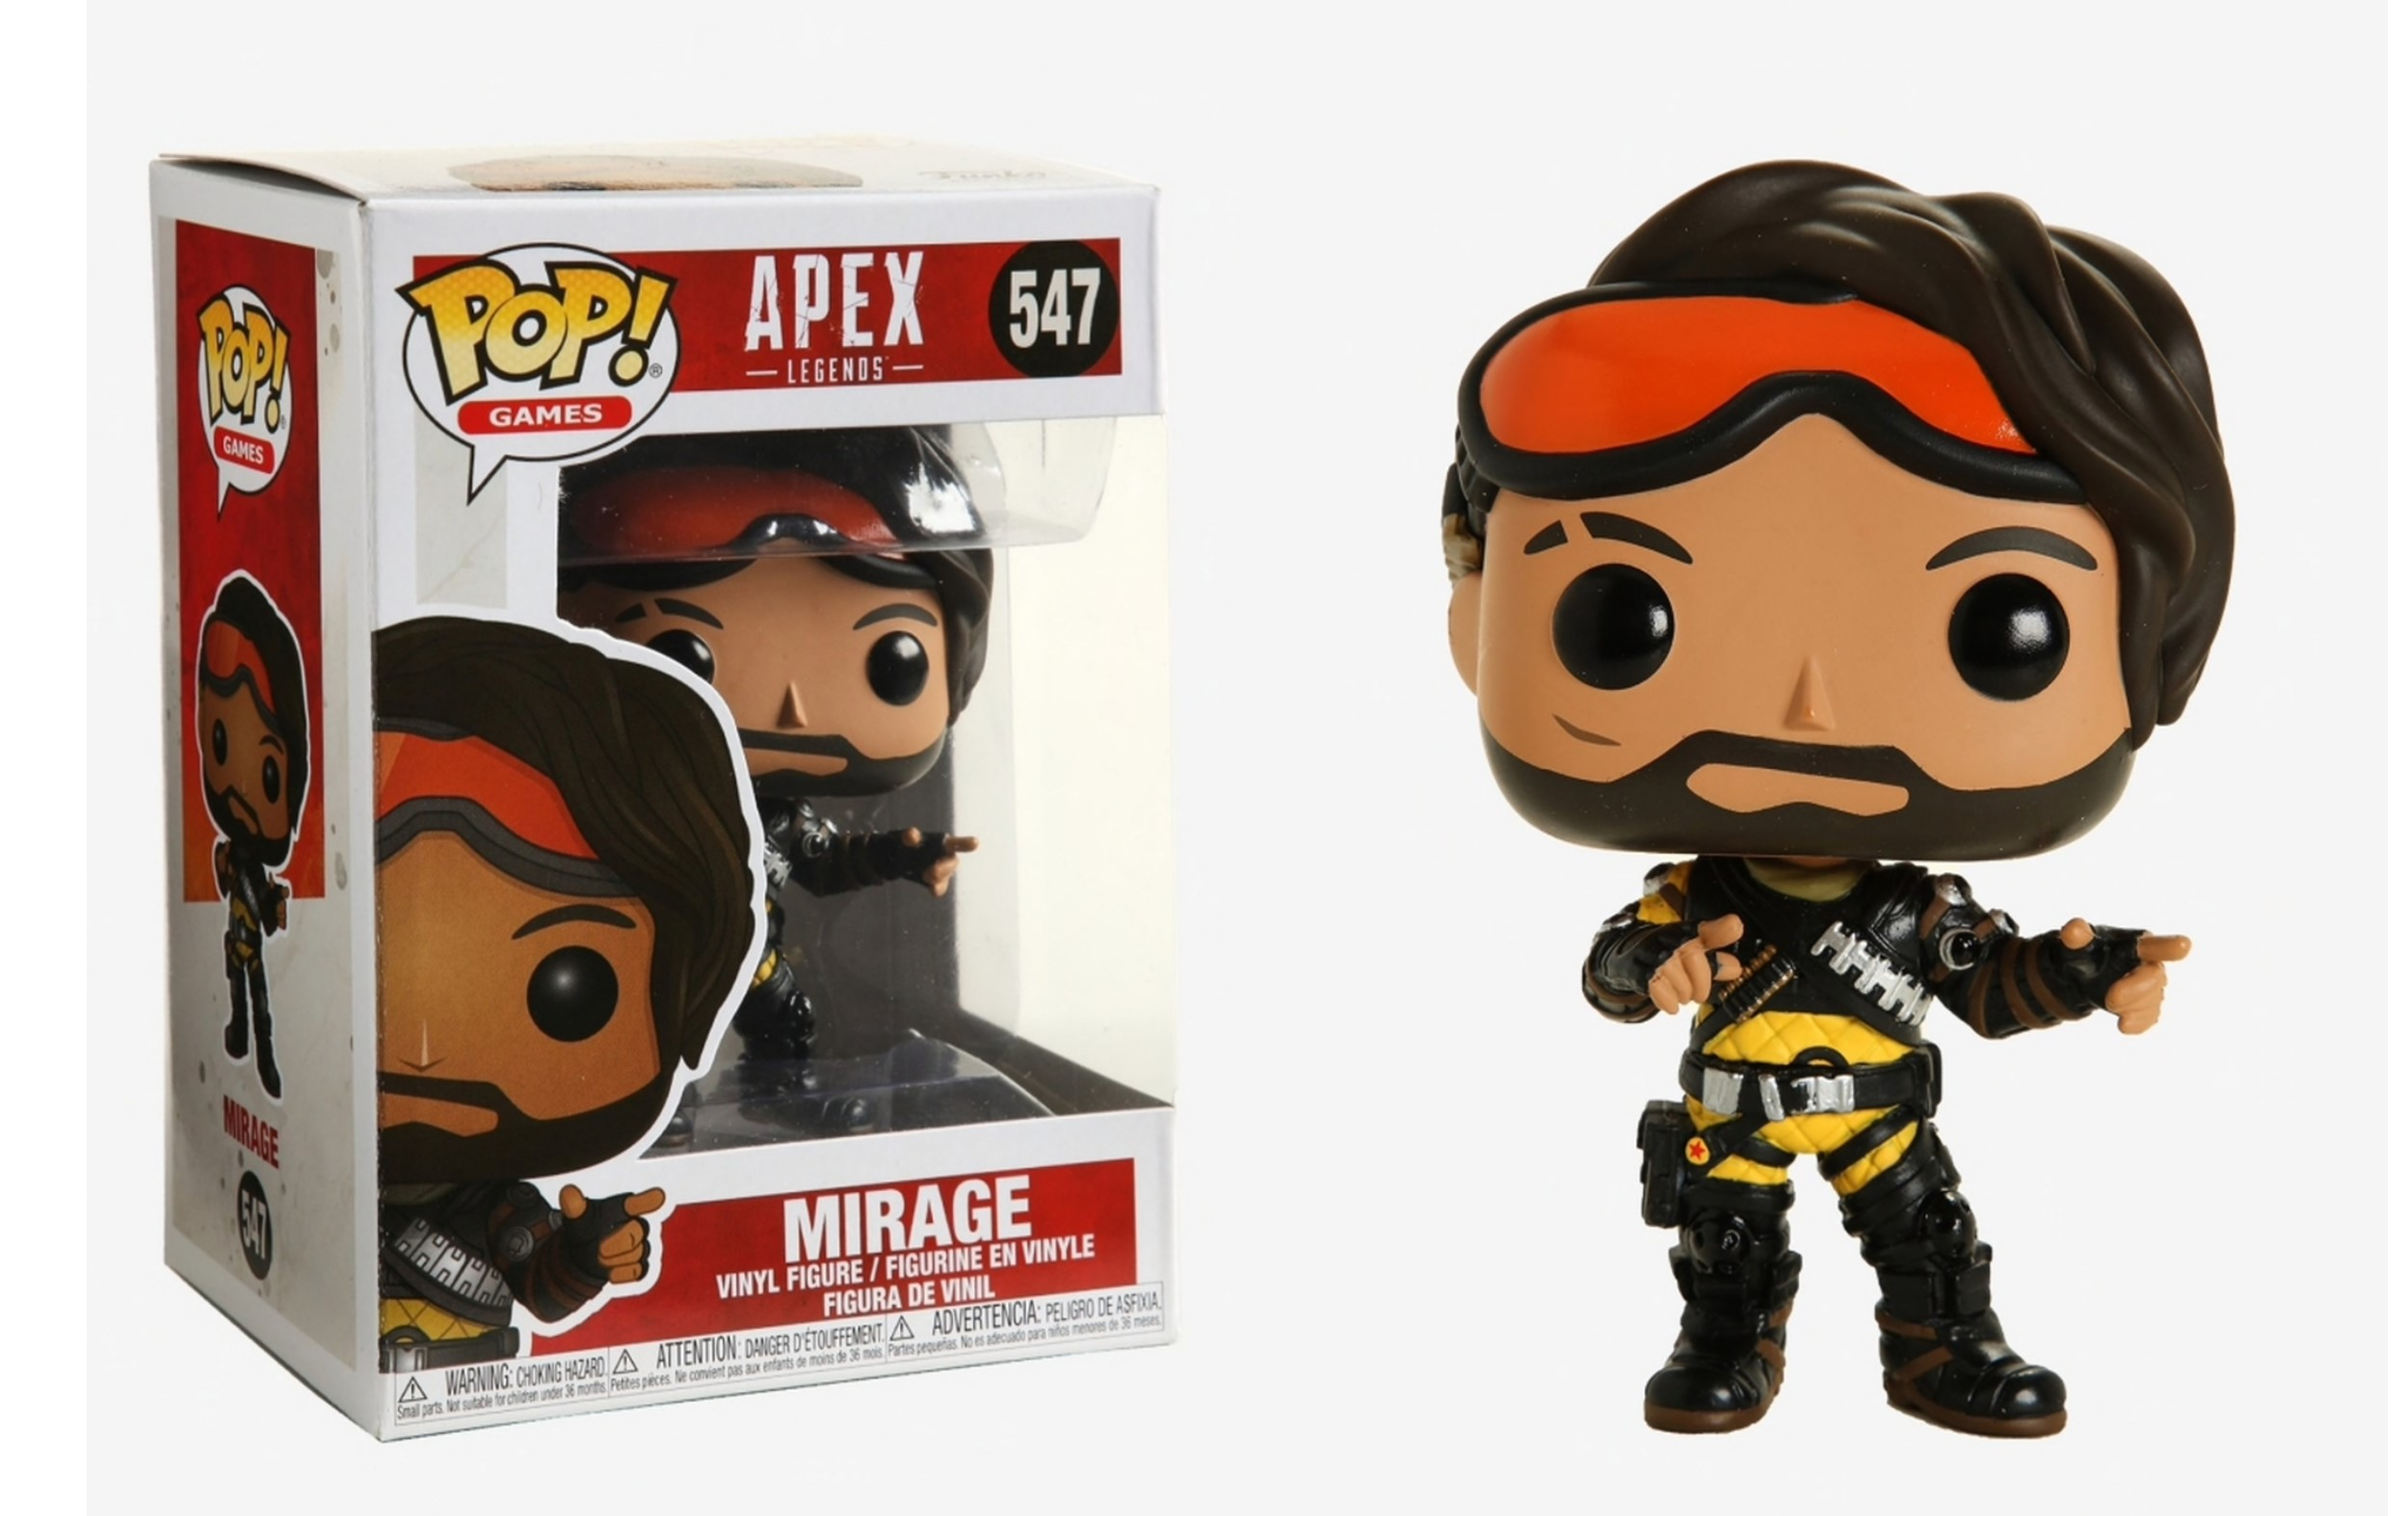 Apex Legends Mirage 547 Funko POP Vinyl Figure